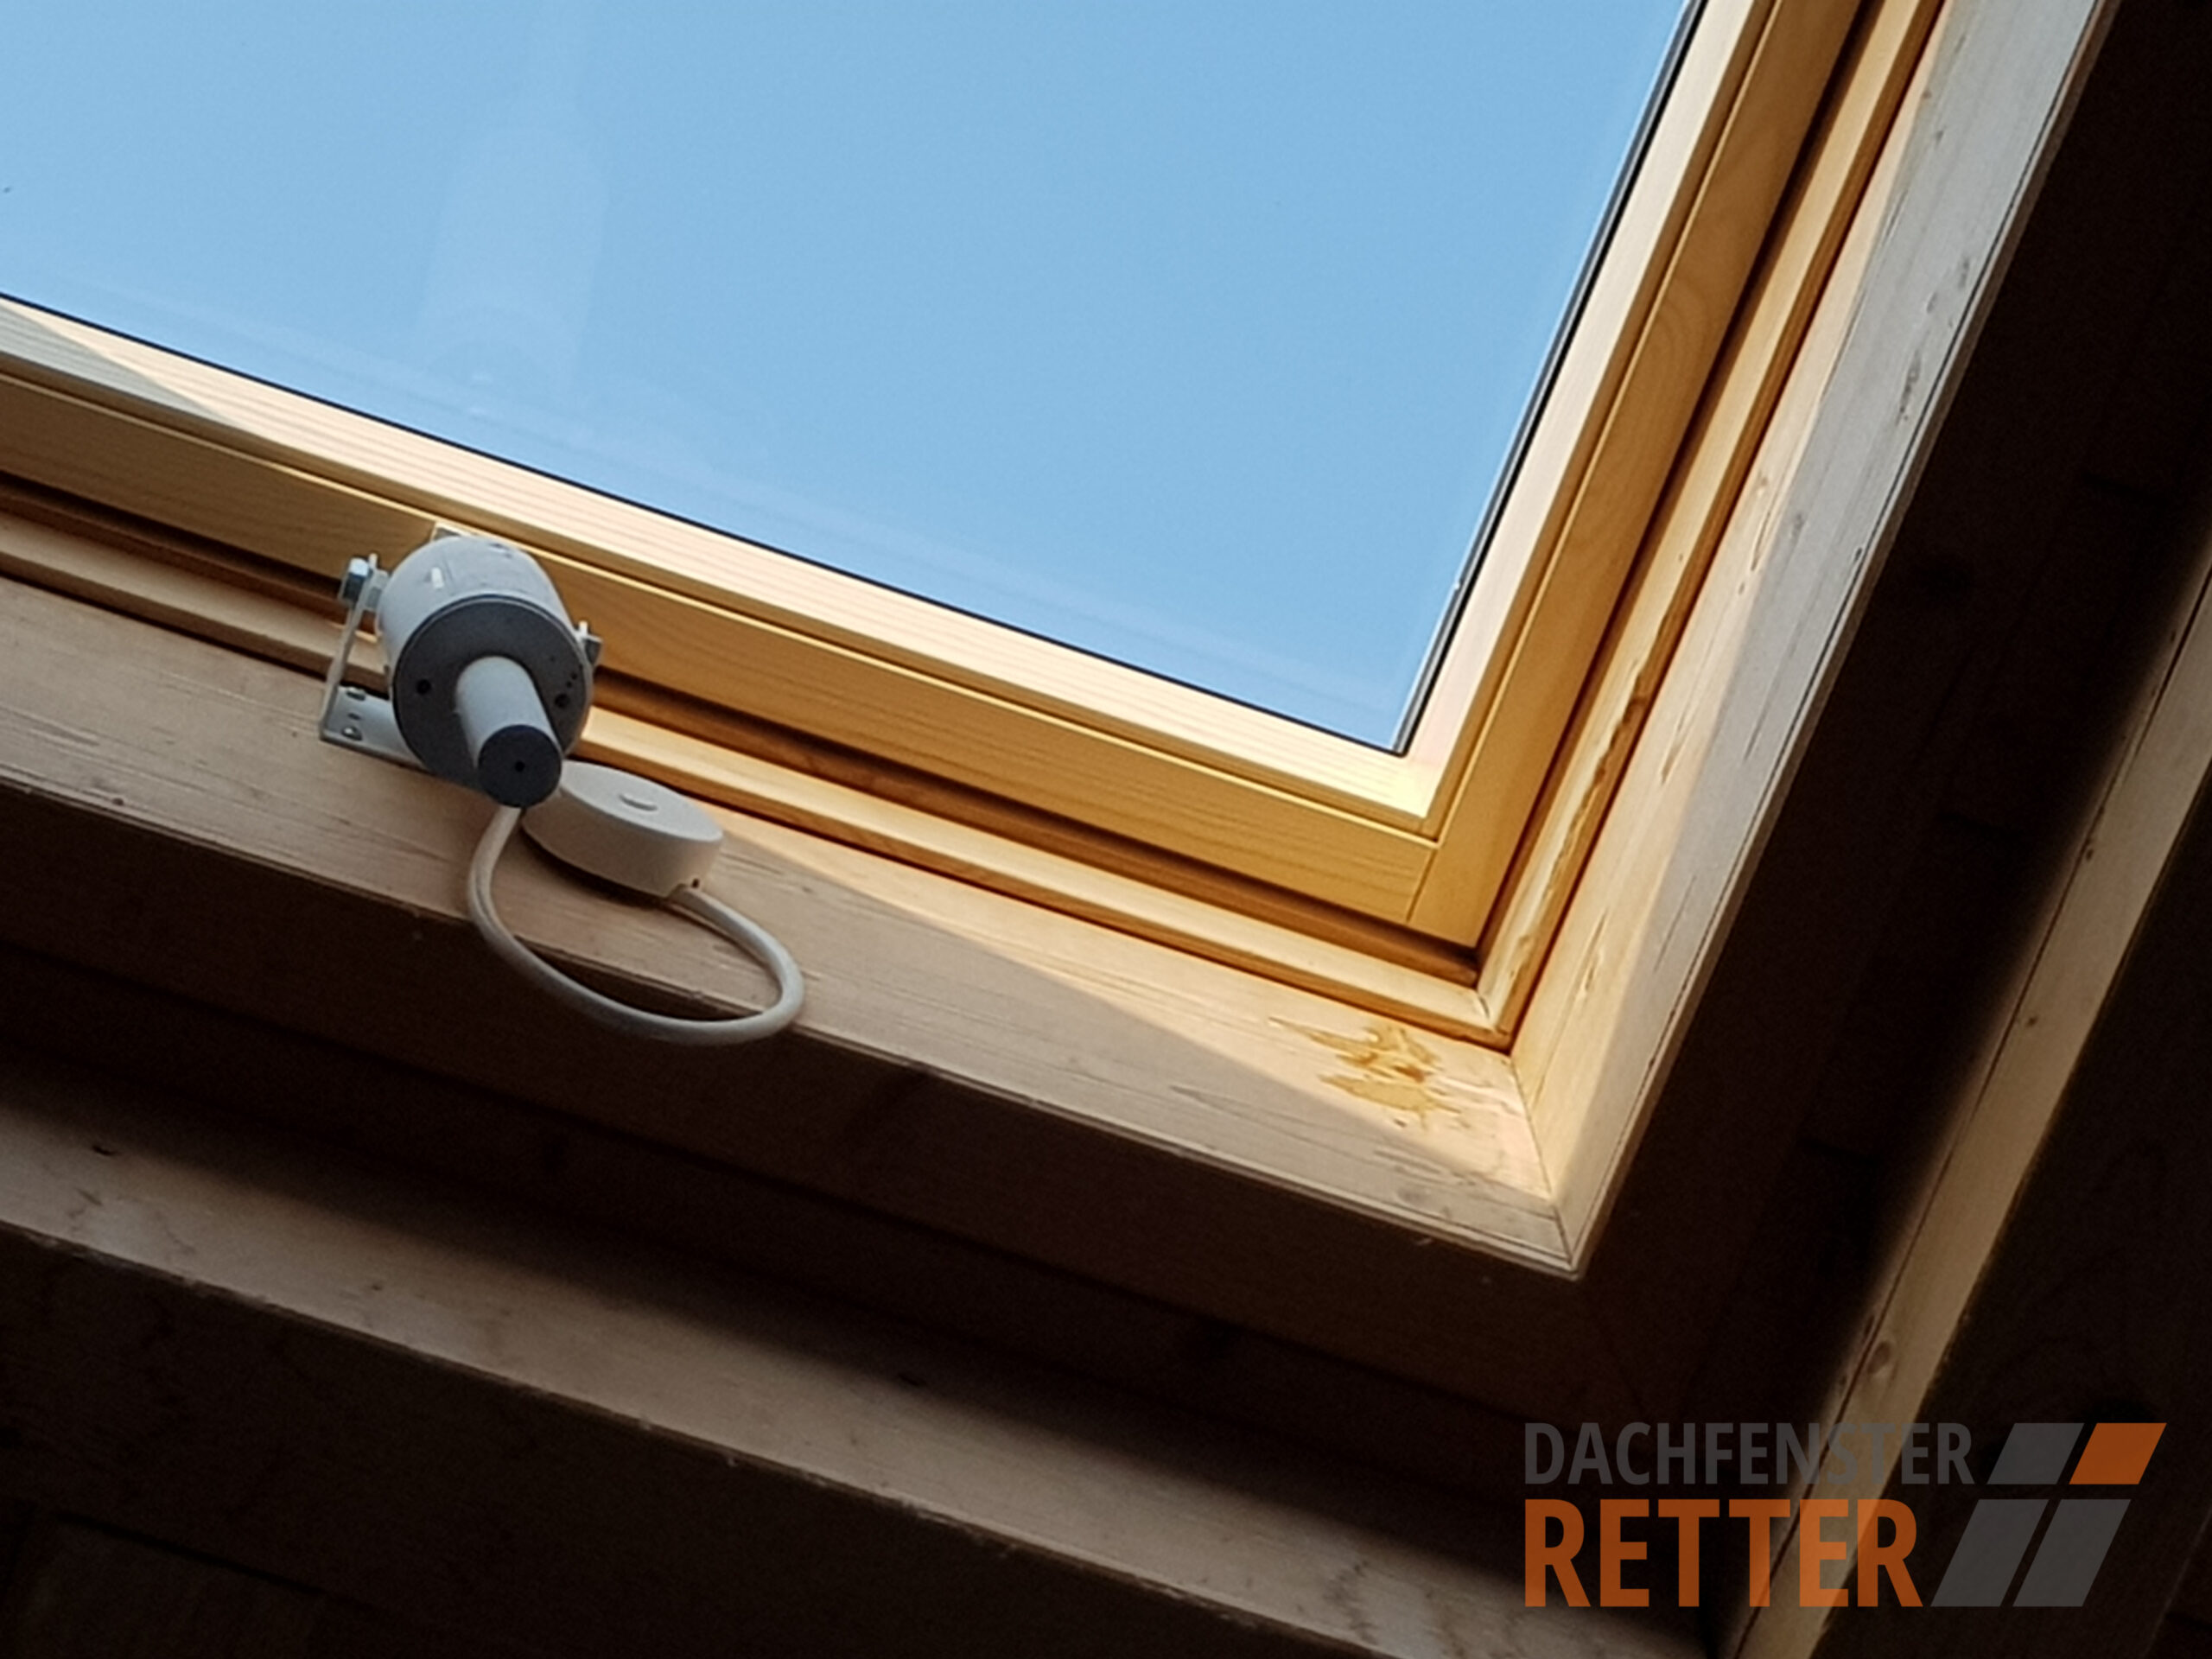 Full Size of Wartung Reparatur Veluarchive Dachfenster Retter Velux Fenster Ersatzteile Preise Rollo Kaufen Einbauen Wohnzimmer Velux Scharnier